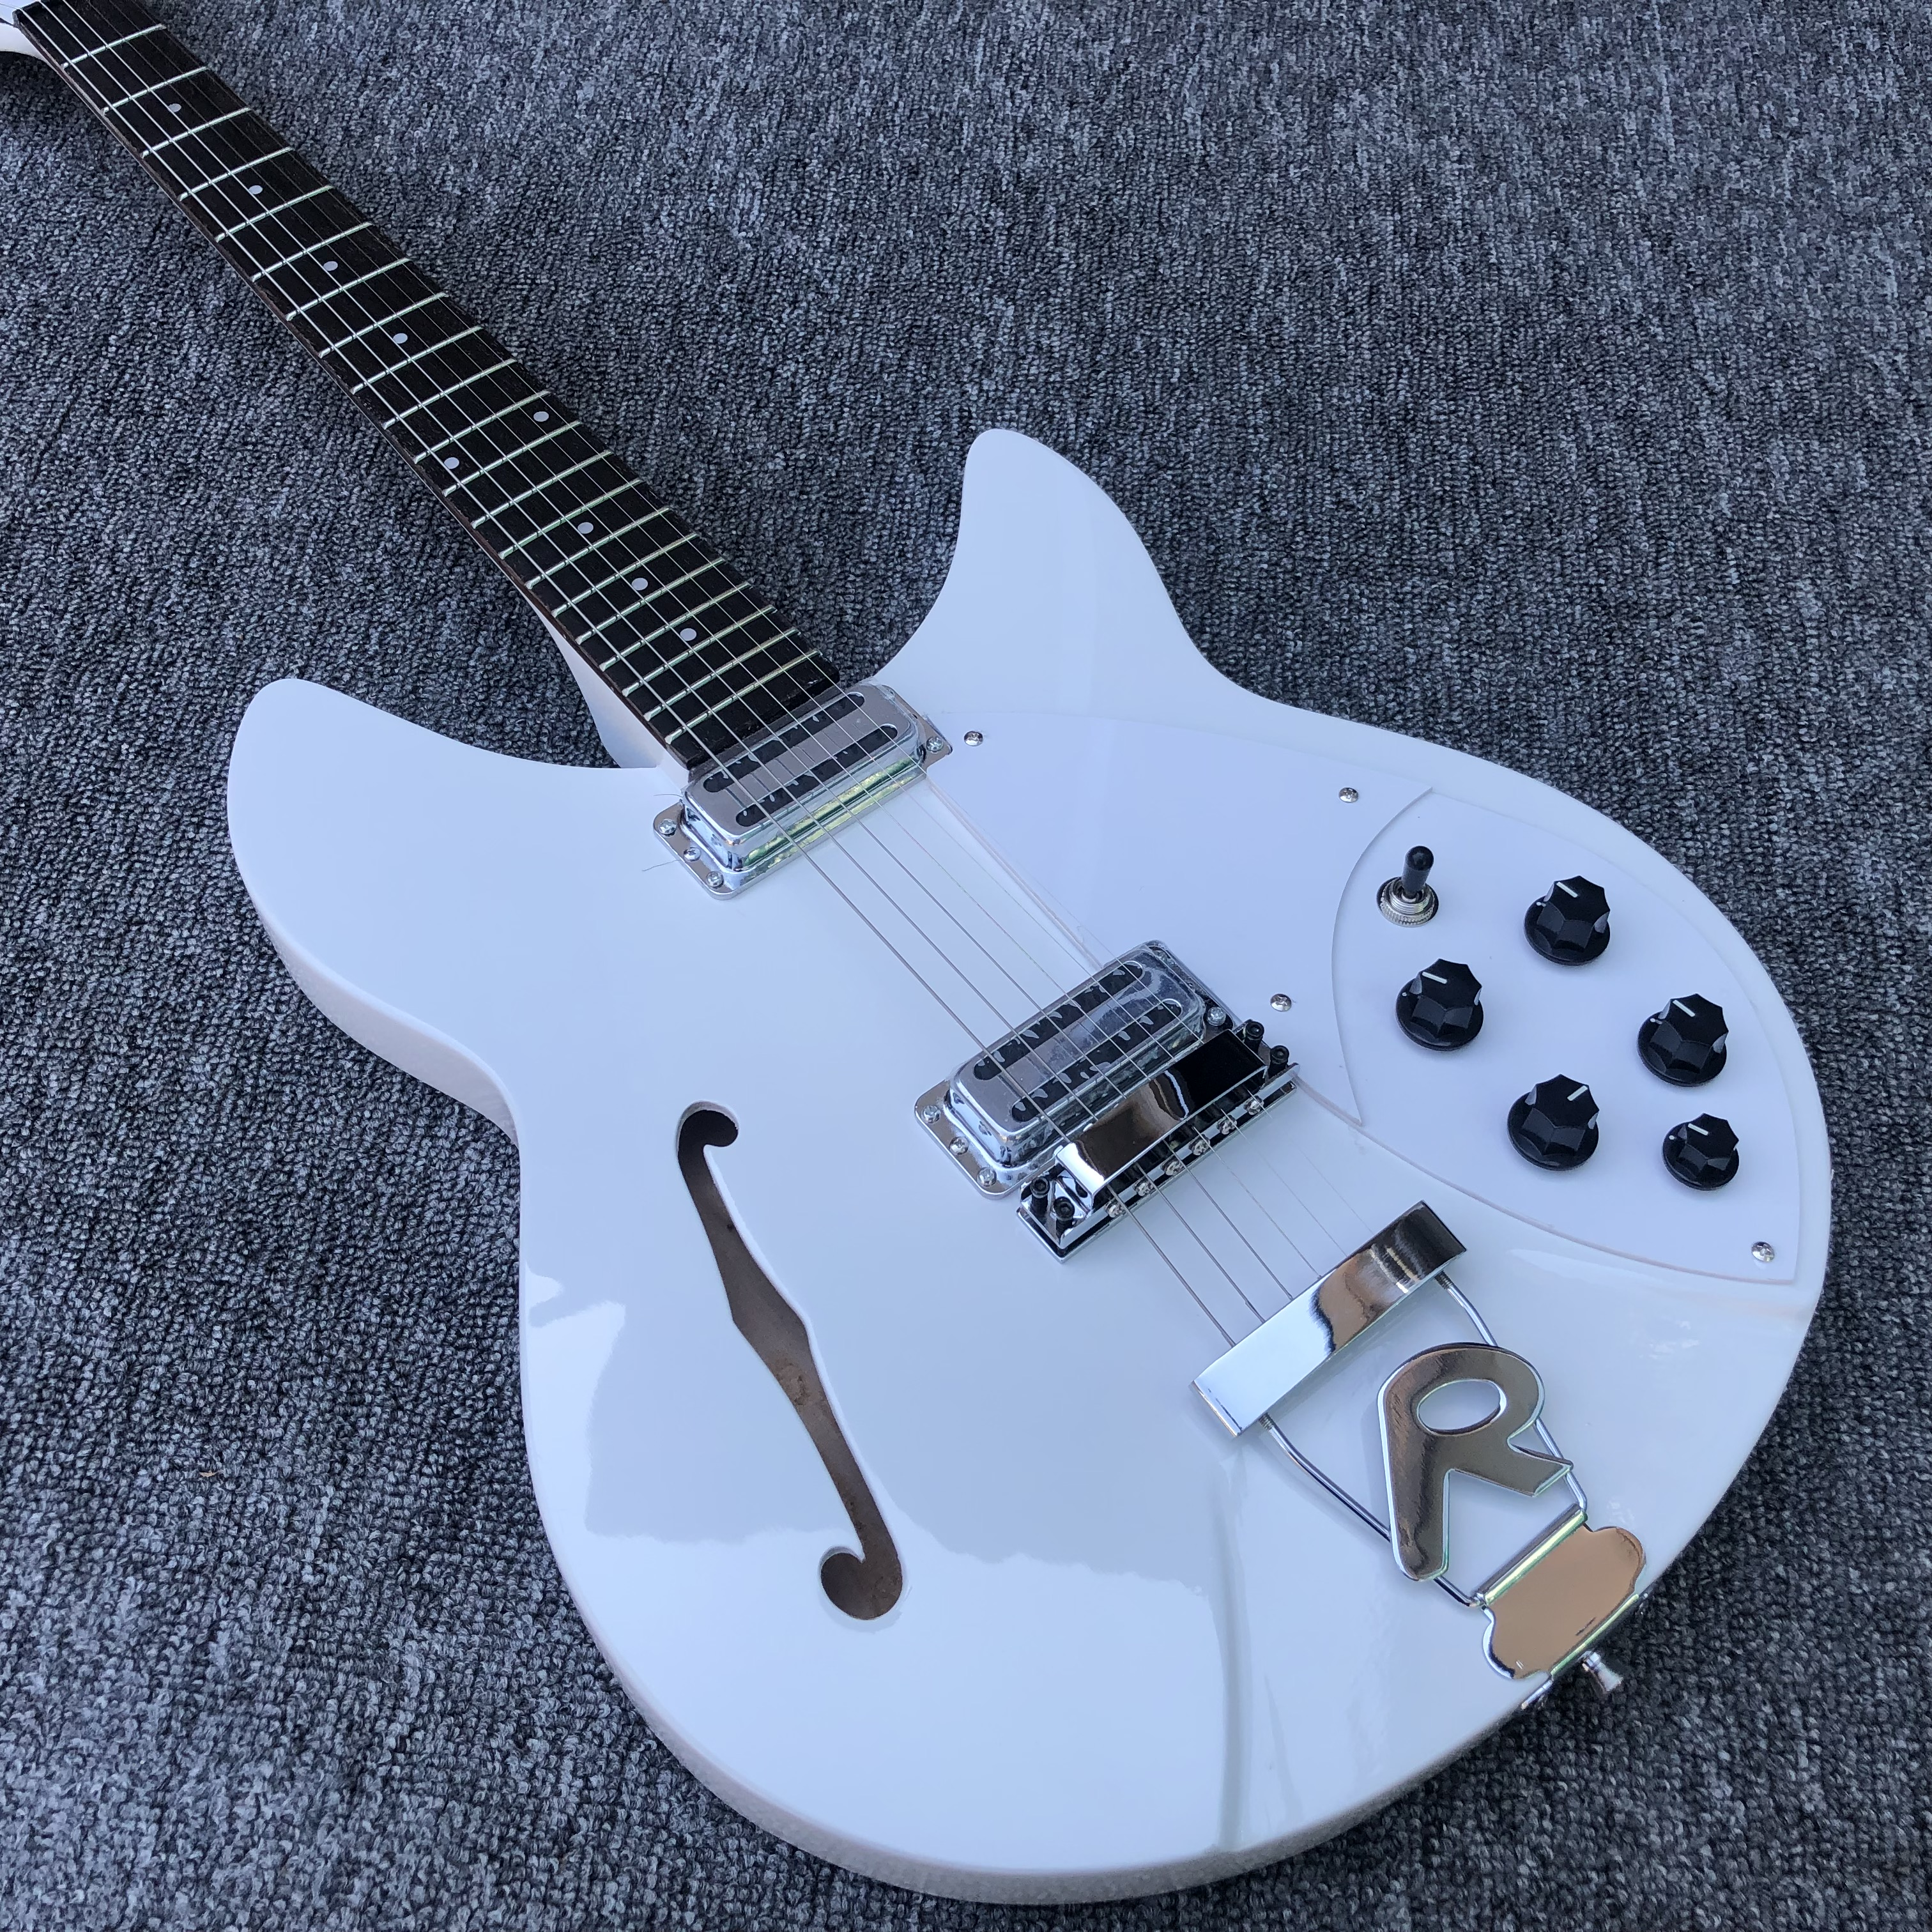 High quality 6 String Electric Guitar, Ricken 360 Electric Guitar,White paint body with F hole,free shipping